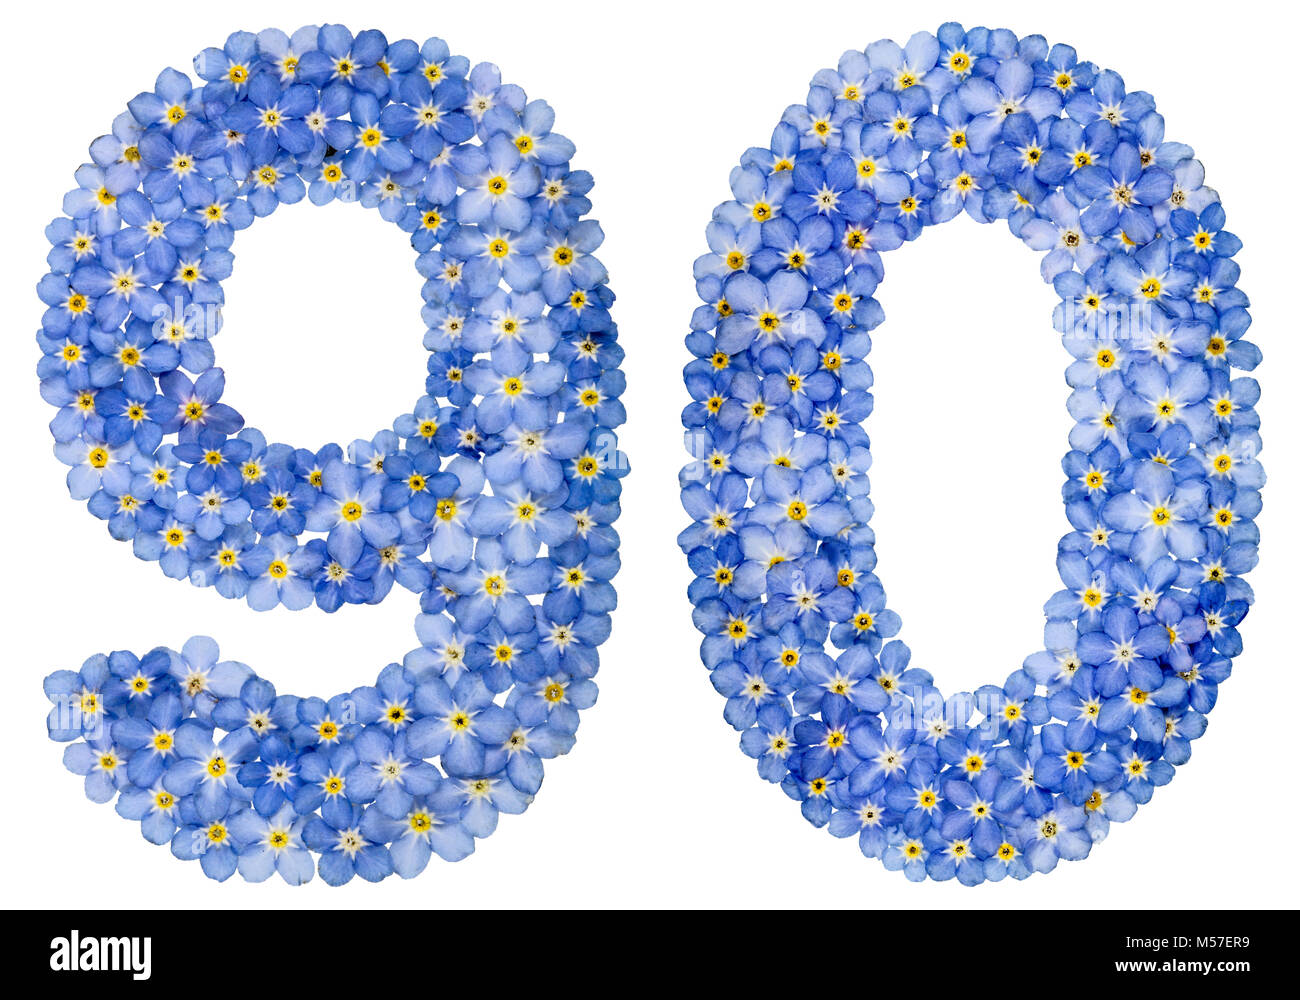 Arabic numeral 90, ninety, from blue forget-me-not flowers - Stock Image